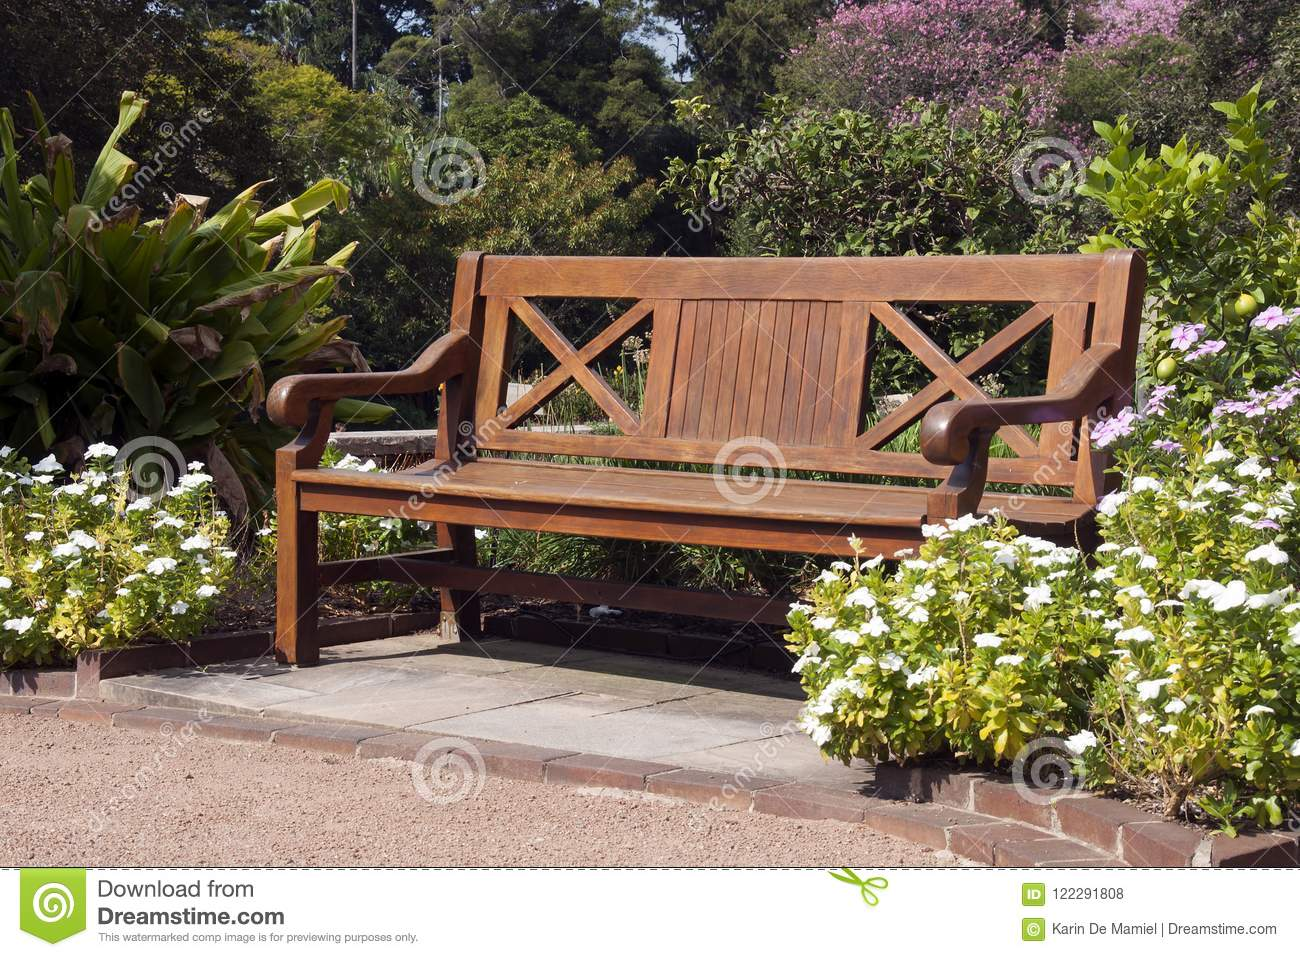 Phenomenal Park Bench Surrounded By Flowering Plants Stock Photo Ibusinesslaw Wood Chair Design Ideas Ibusinesslaworg